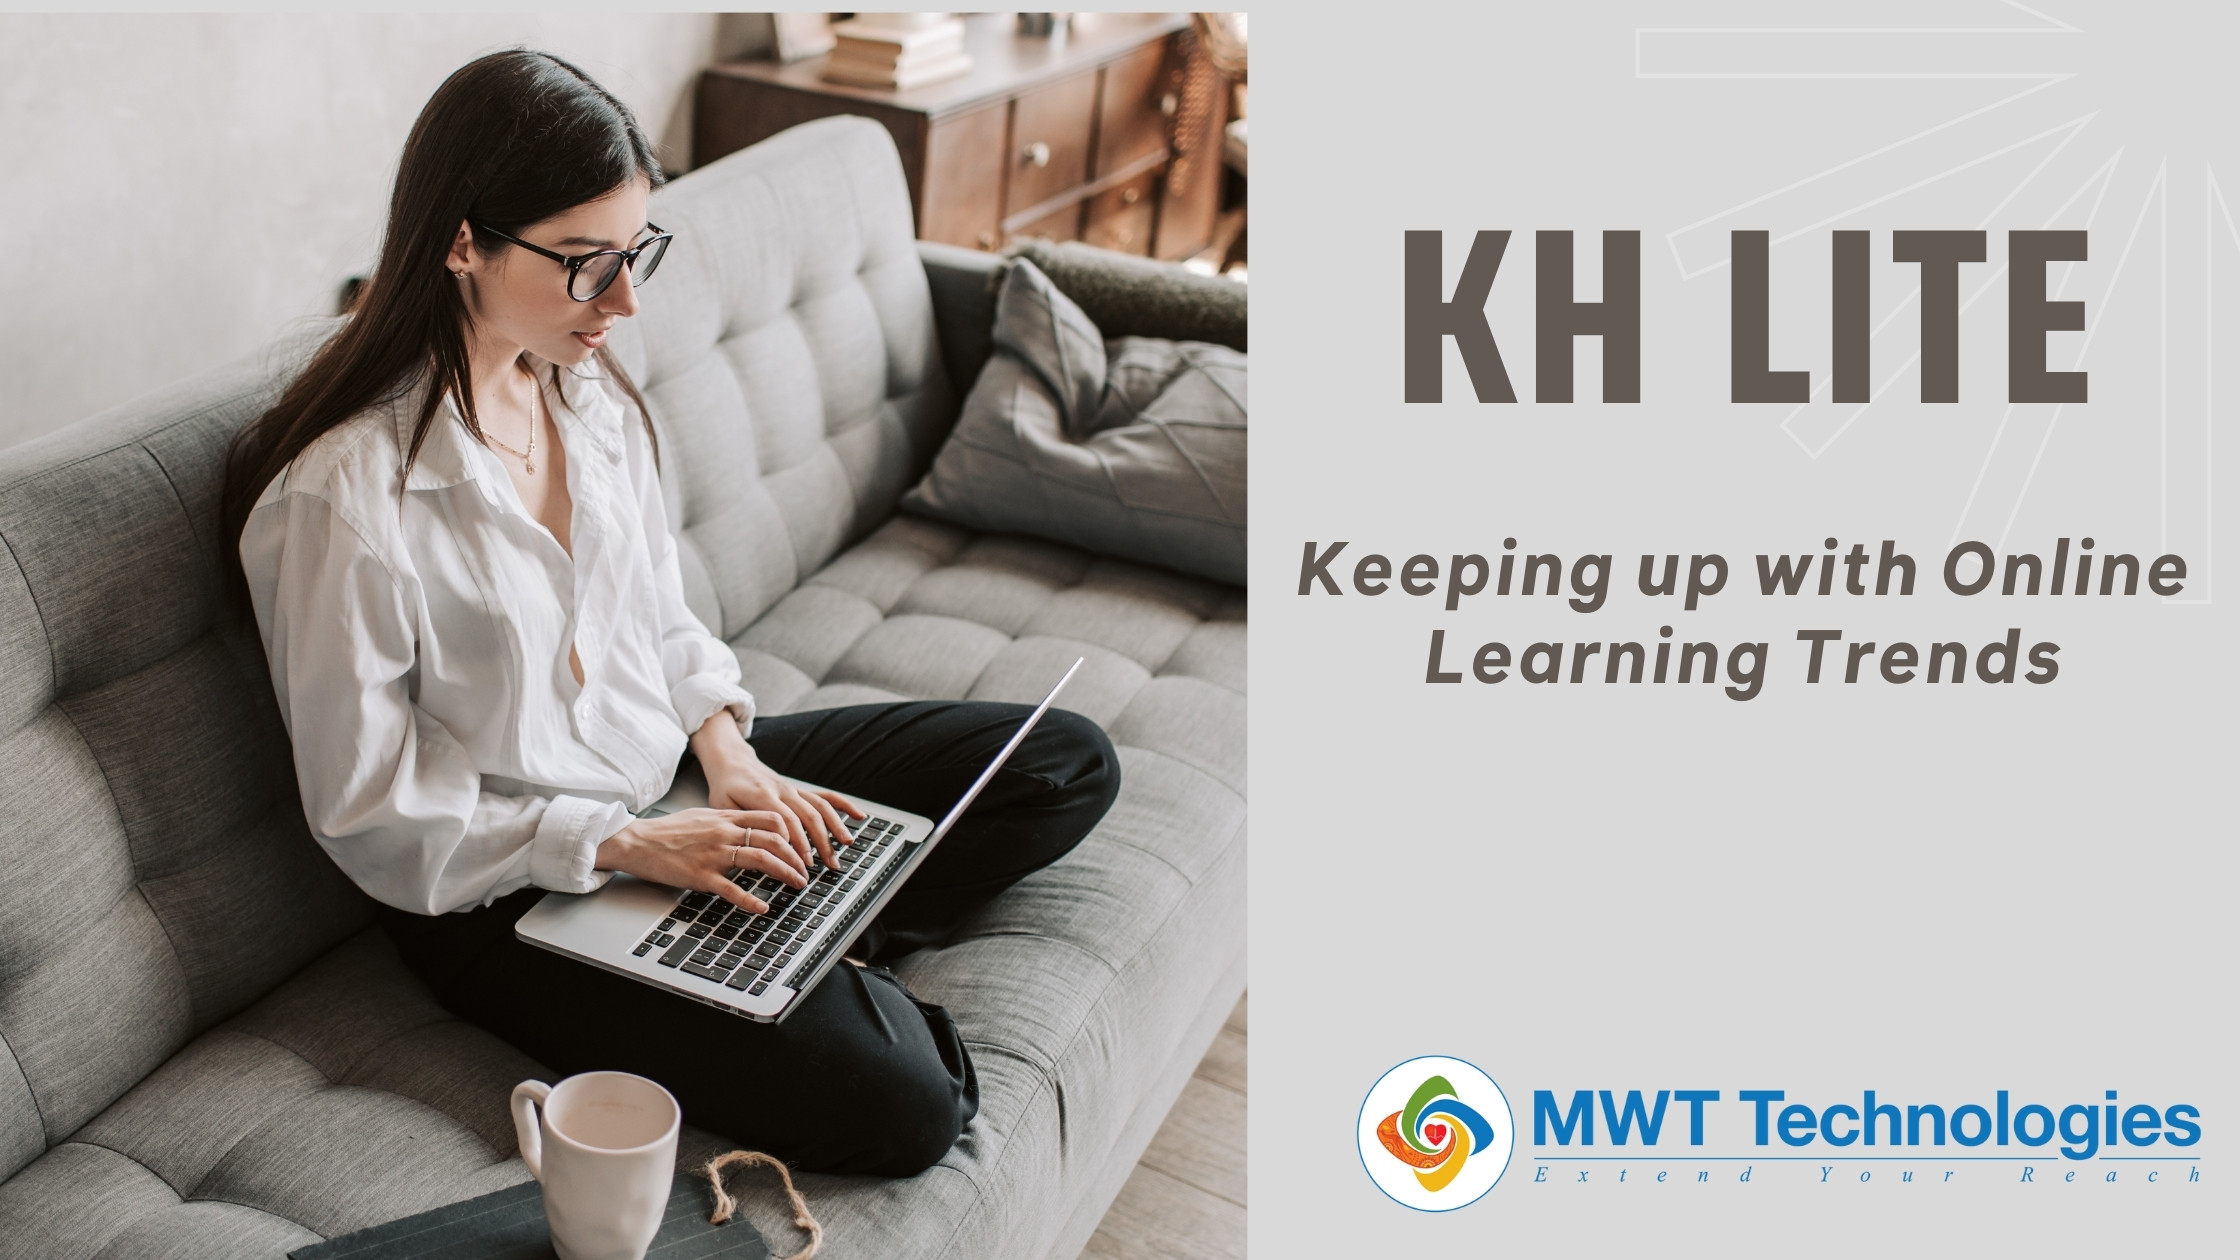 KH Lite: Keeping up with Online Learning Trends